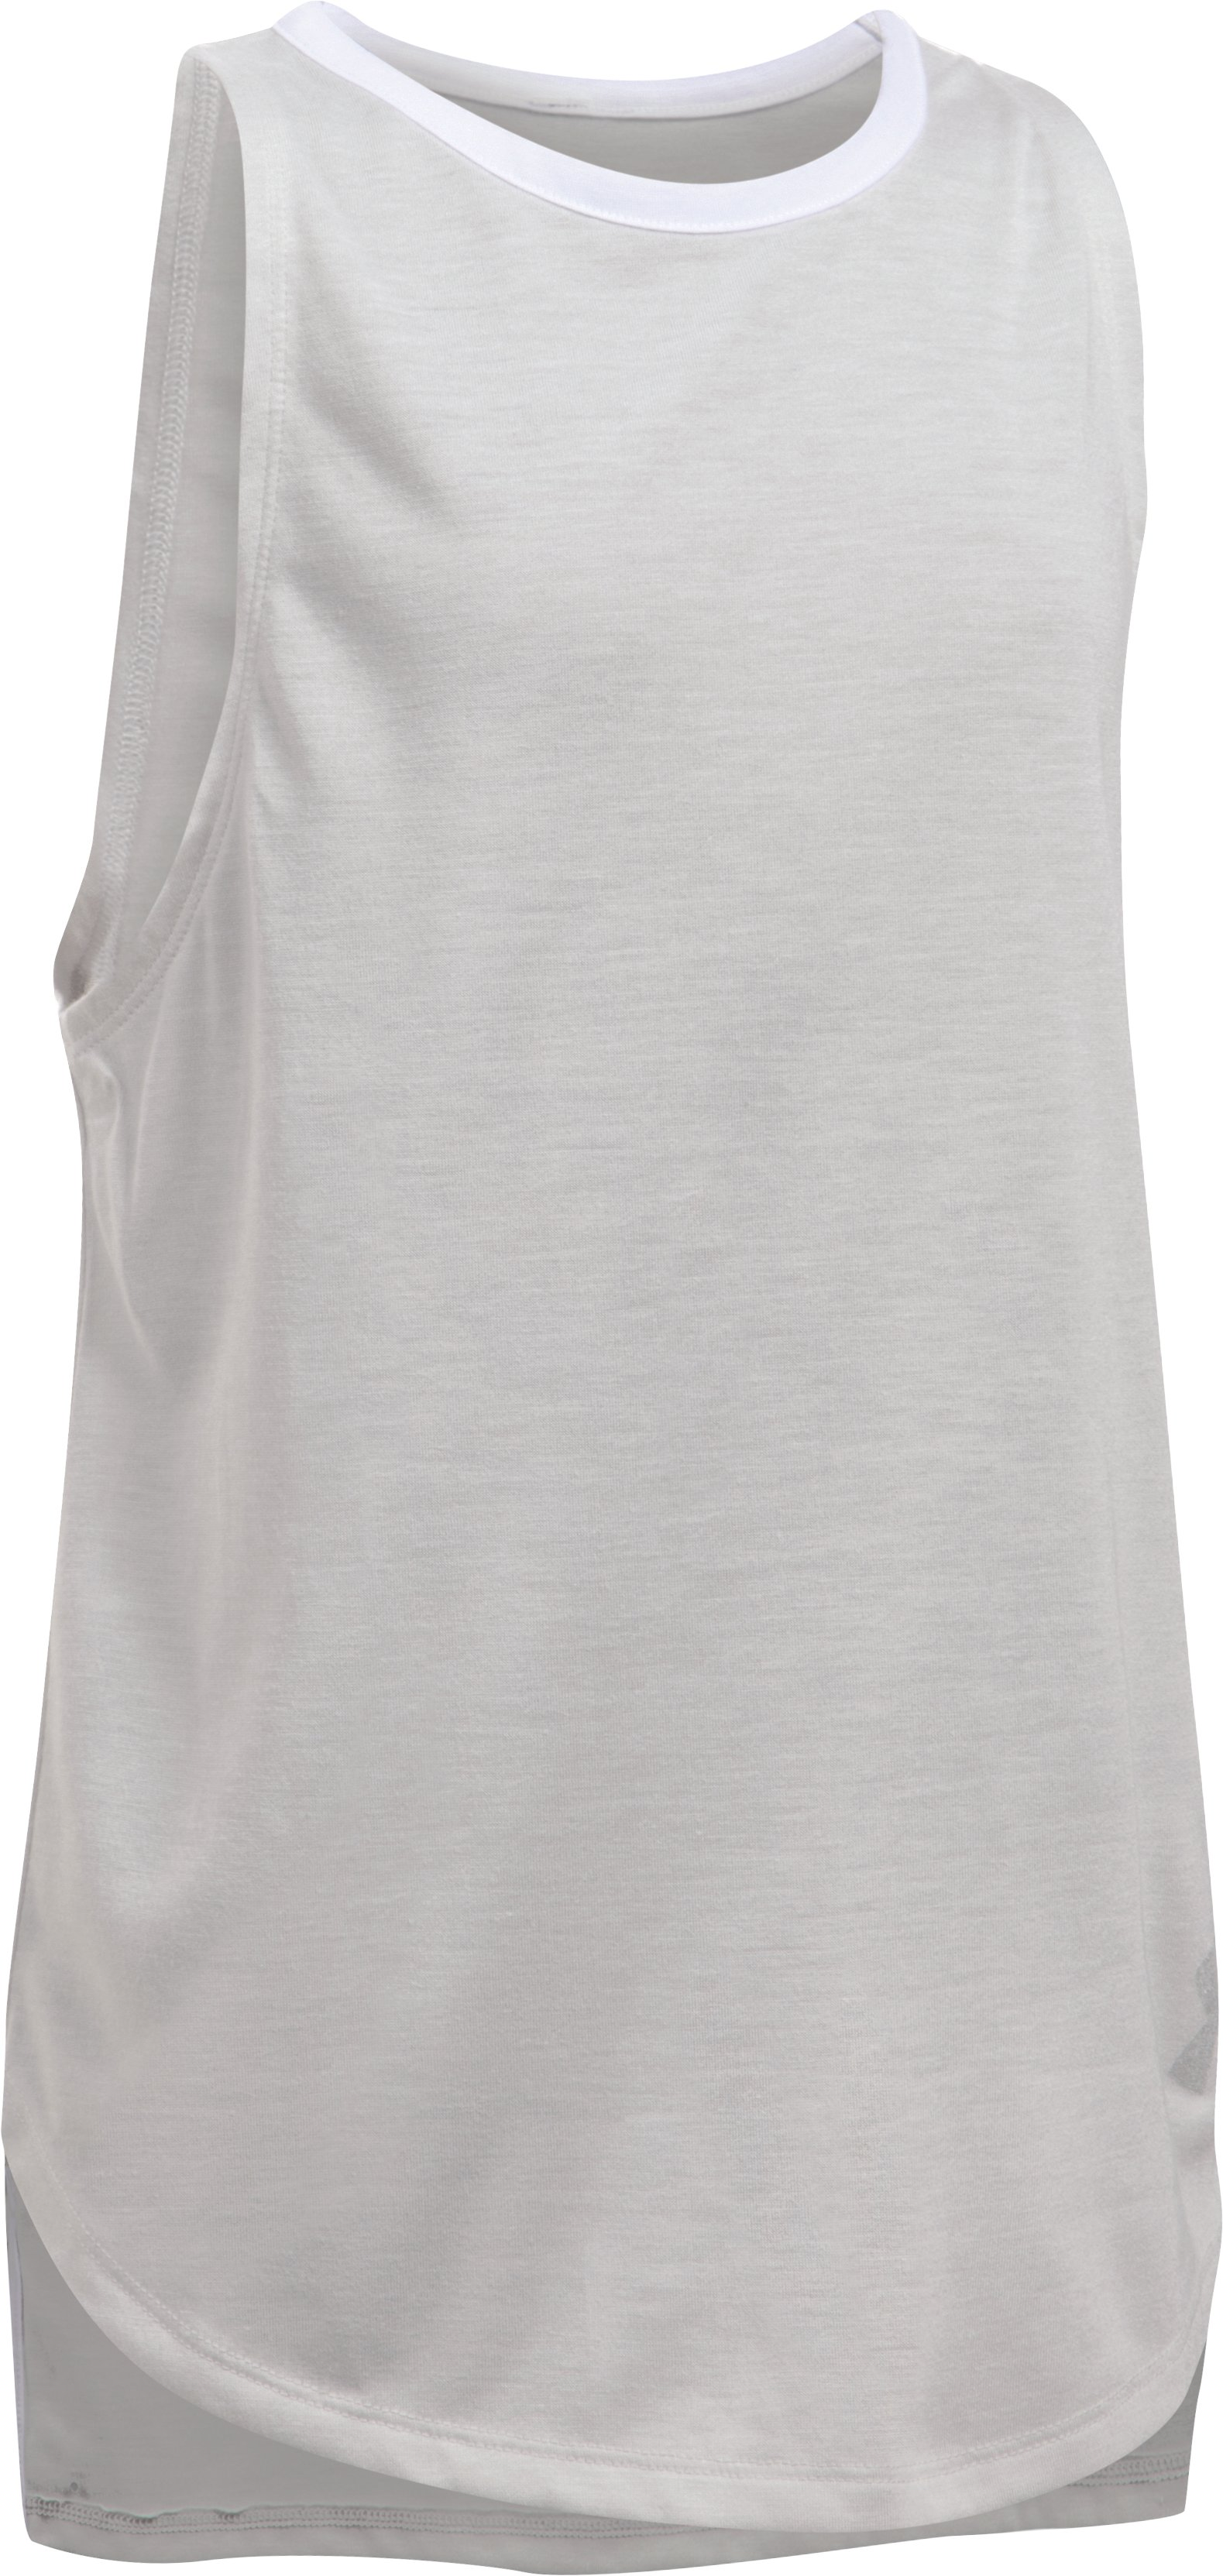 Girls' UA Threadborne Play Up Tank 10 Colors $14.99 - $18.99